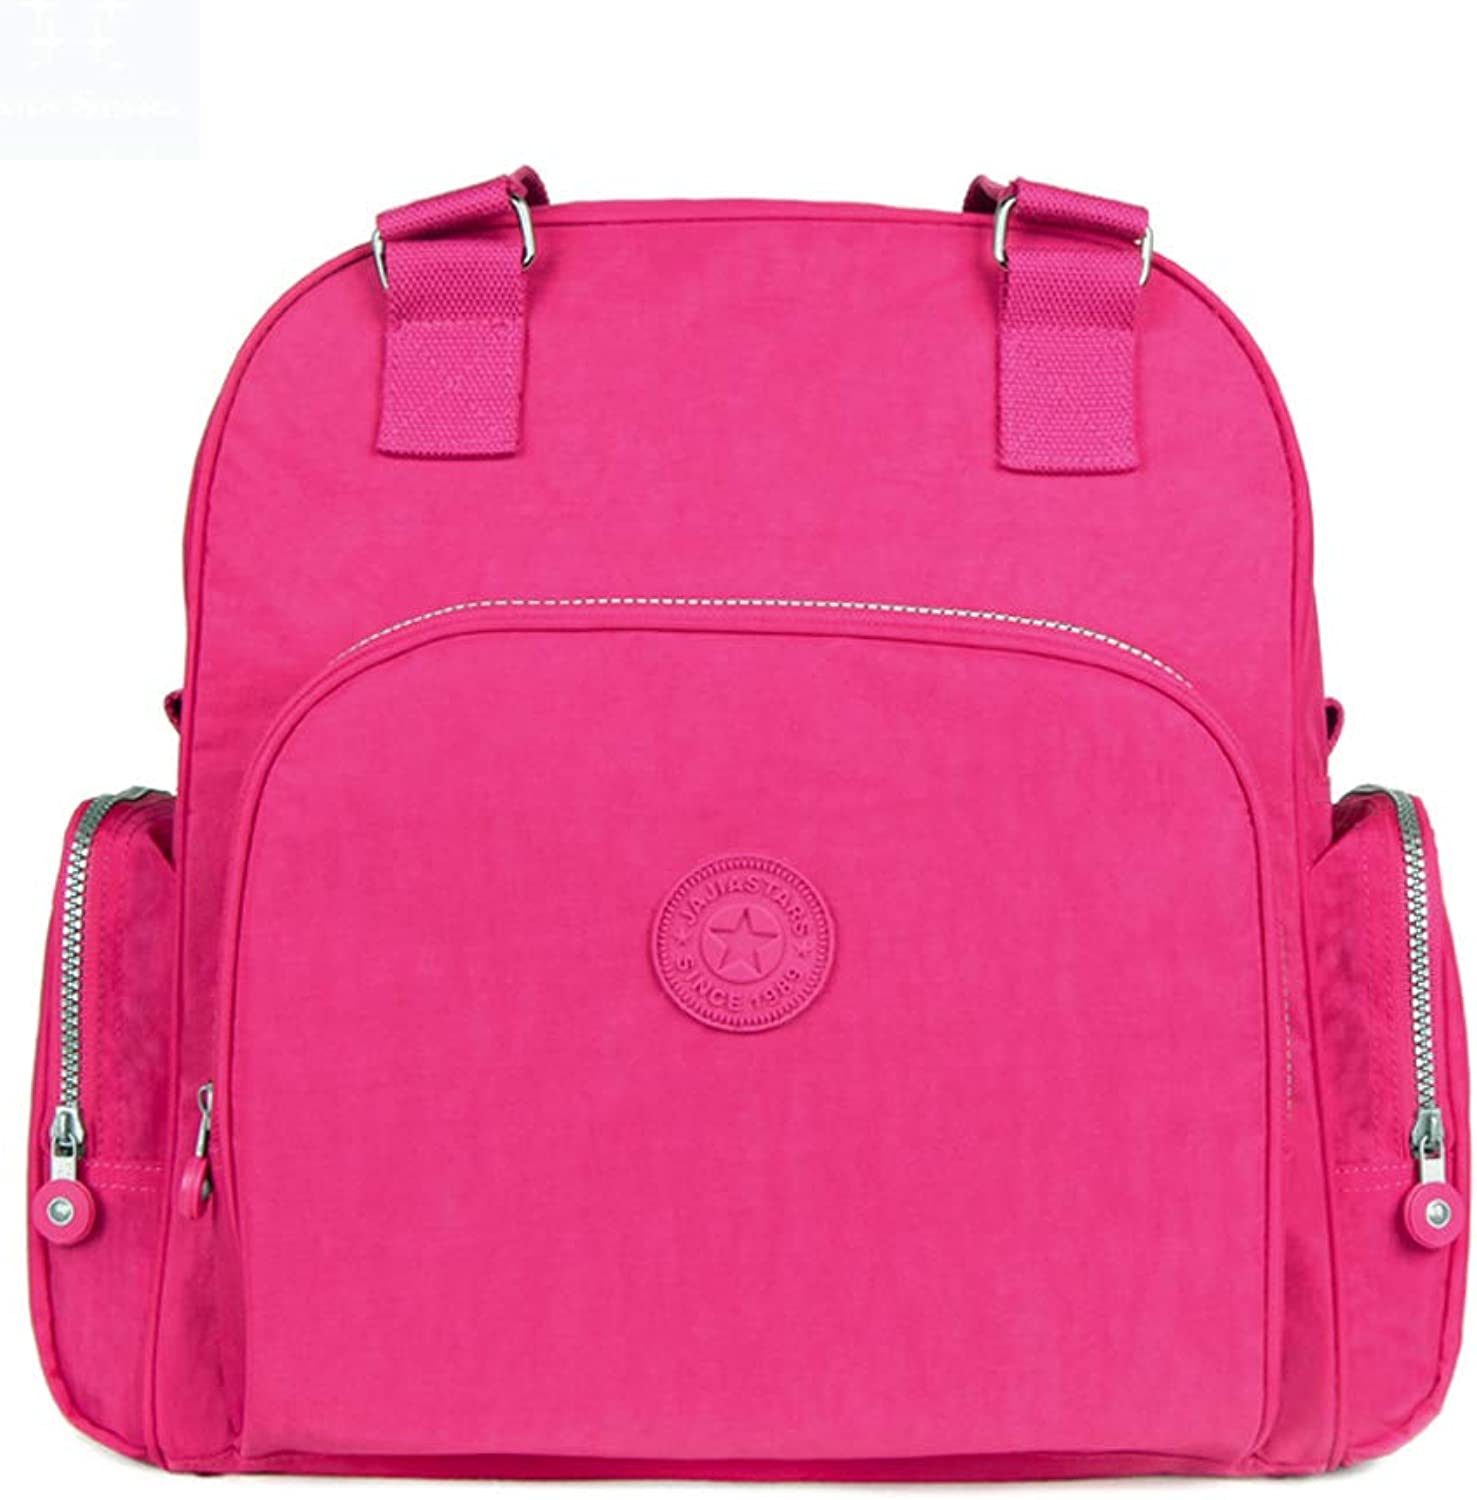 YP PY Backpack Multi Function Large Capacity Backpack Fashionable Waterproof Mother Backpack Mother And Baby Pregnant Woman Outgoing Bag